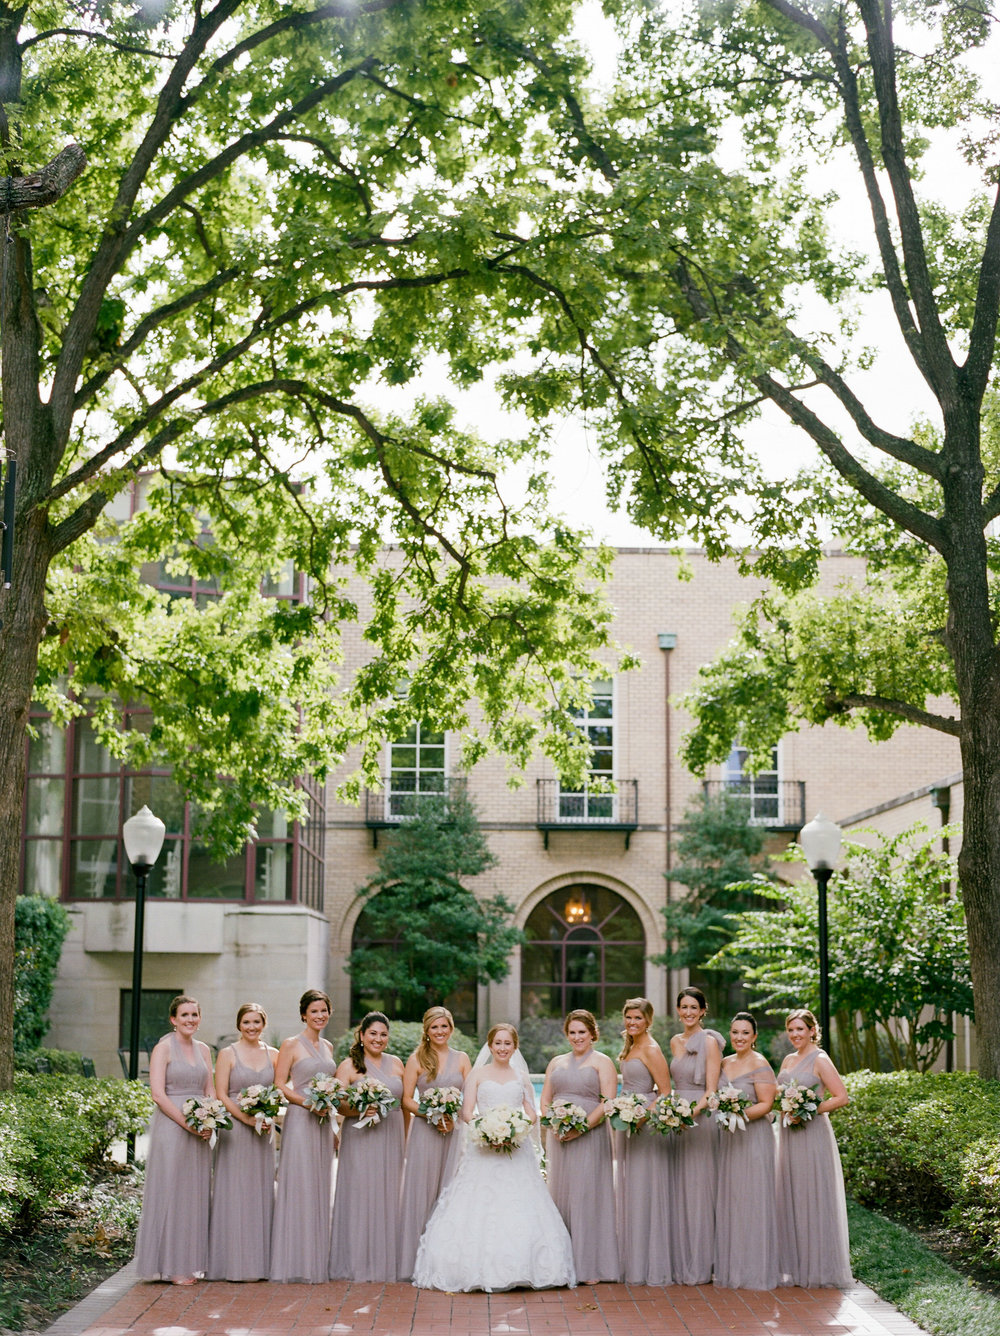 Fine-Art-Film-Houston-Wedding-Photographer-Best-Top-Luxury-Texas-Austin-Dallas-Destination-Dana-Fernandez-Photography-River-Oaks-Country-Club-South-Main-Baptist-Ceremony-Reception-Wedding-27.jpg